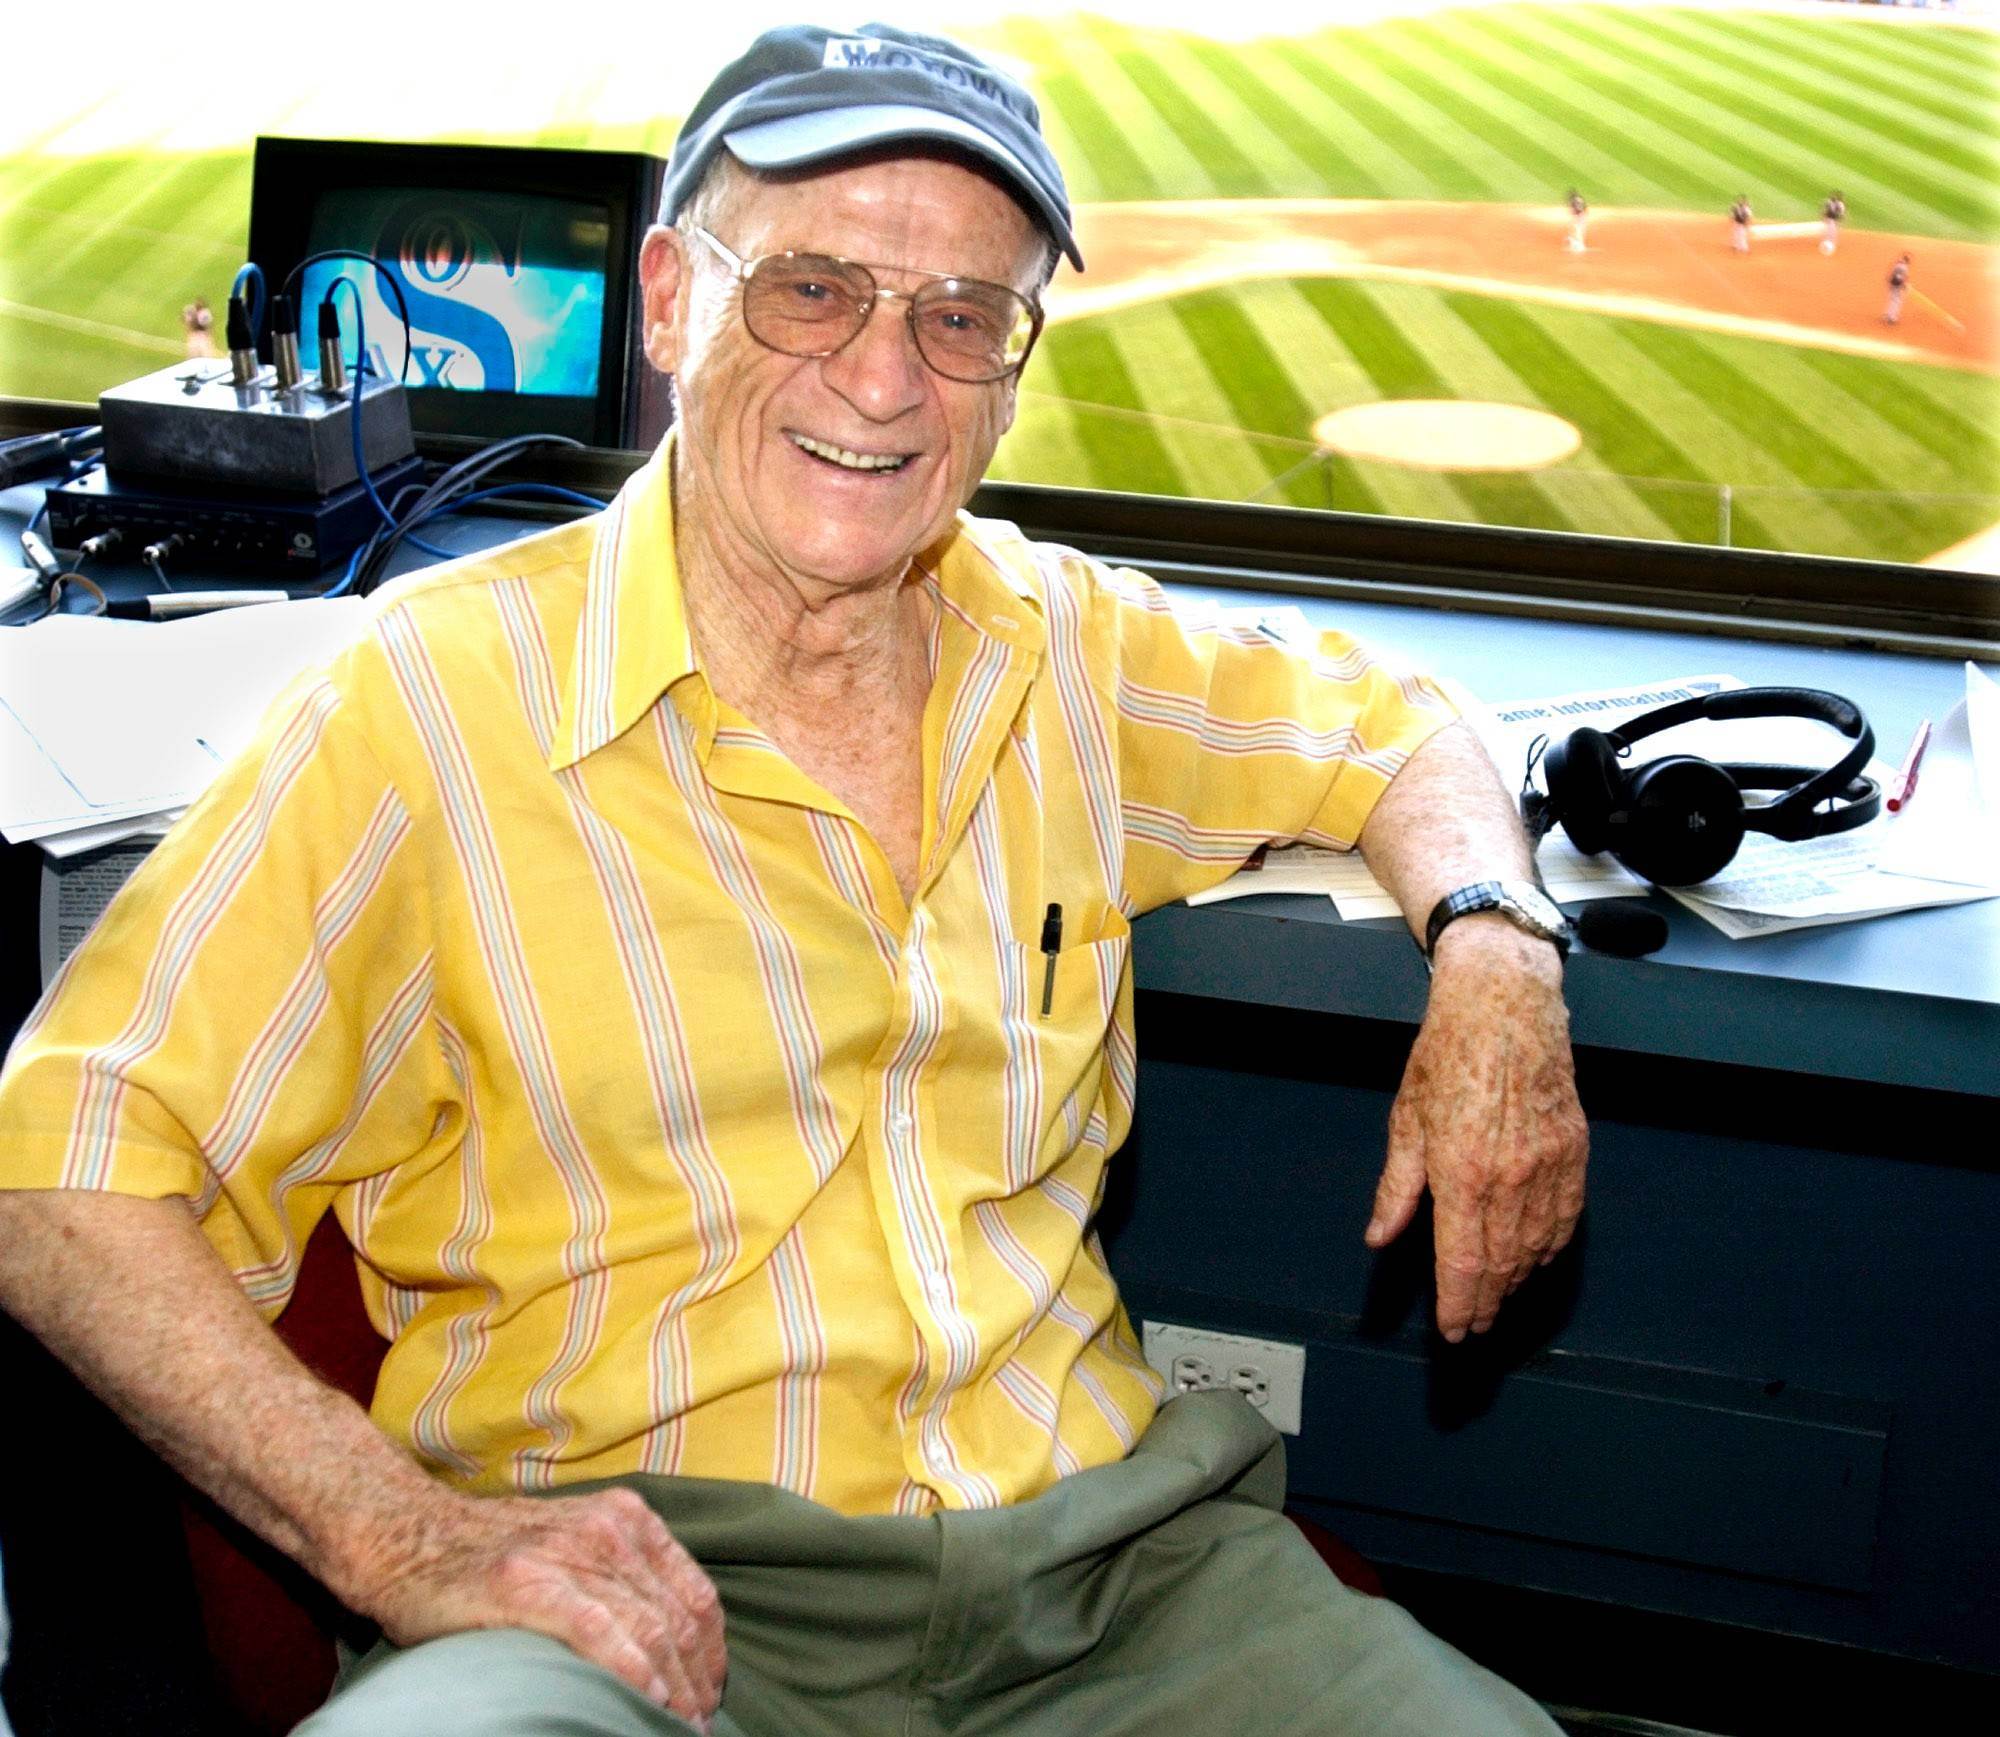 Ernie Harwell, the voice of Detroit Tigers baseball, was one of the reasons Len Kasper wanted to become a baseball broadcaster. Kasper grew up listening to radio broadcasts by the legendary Harwell.